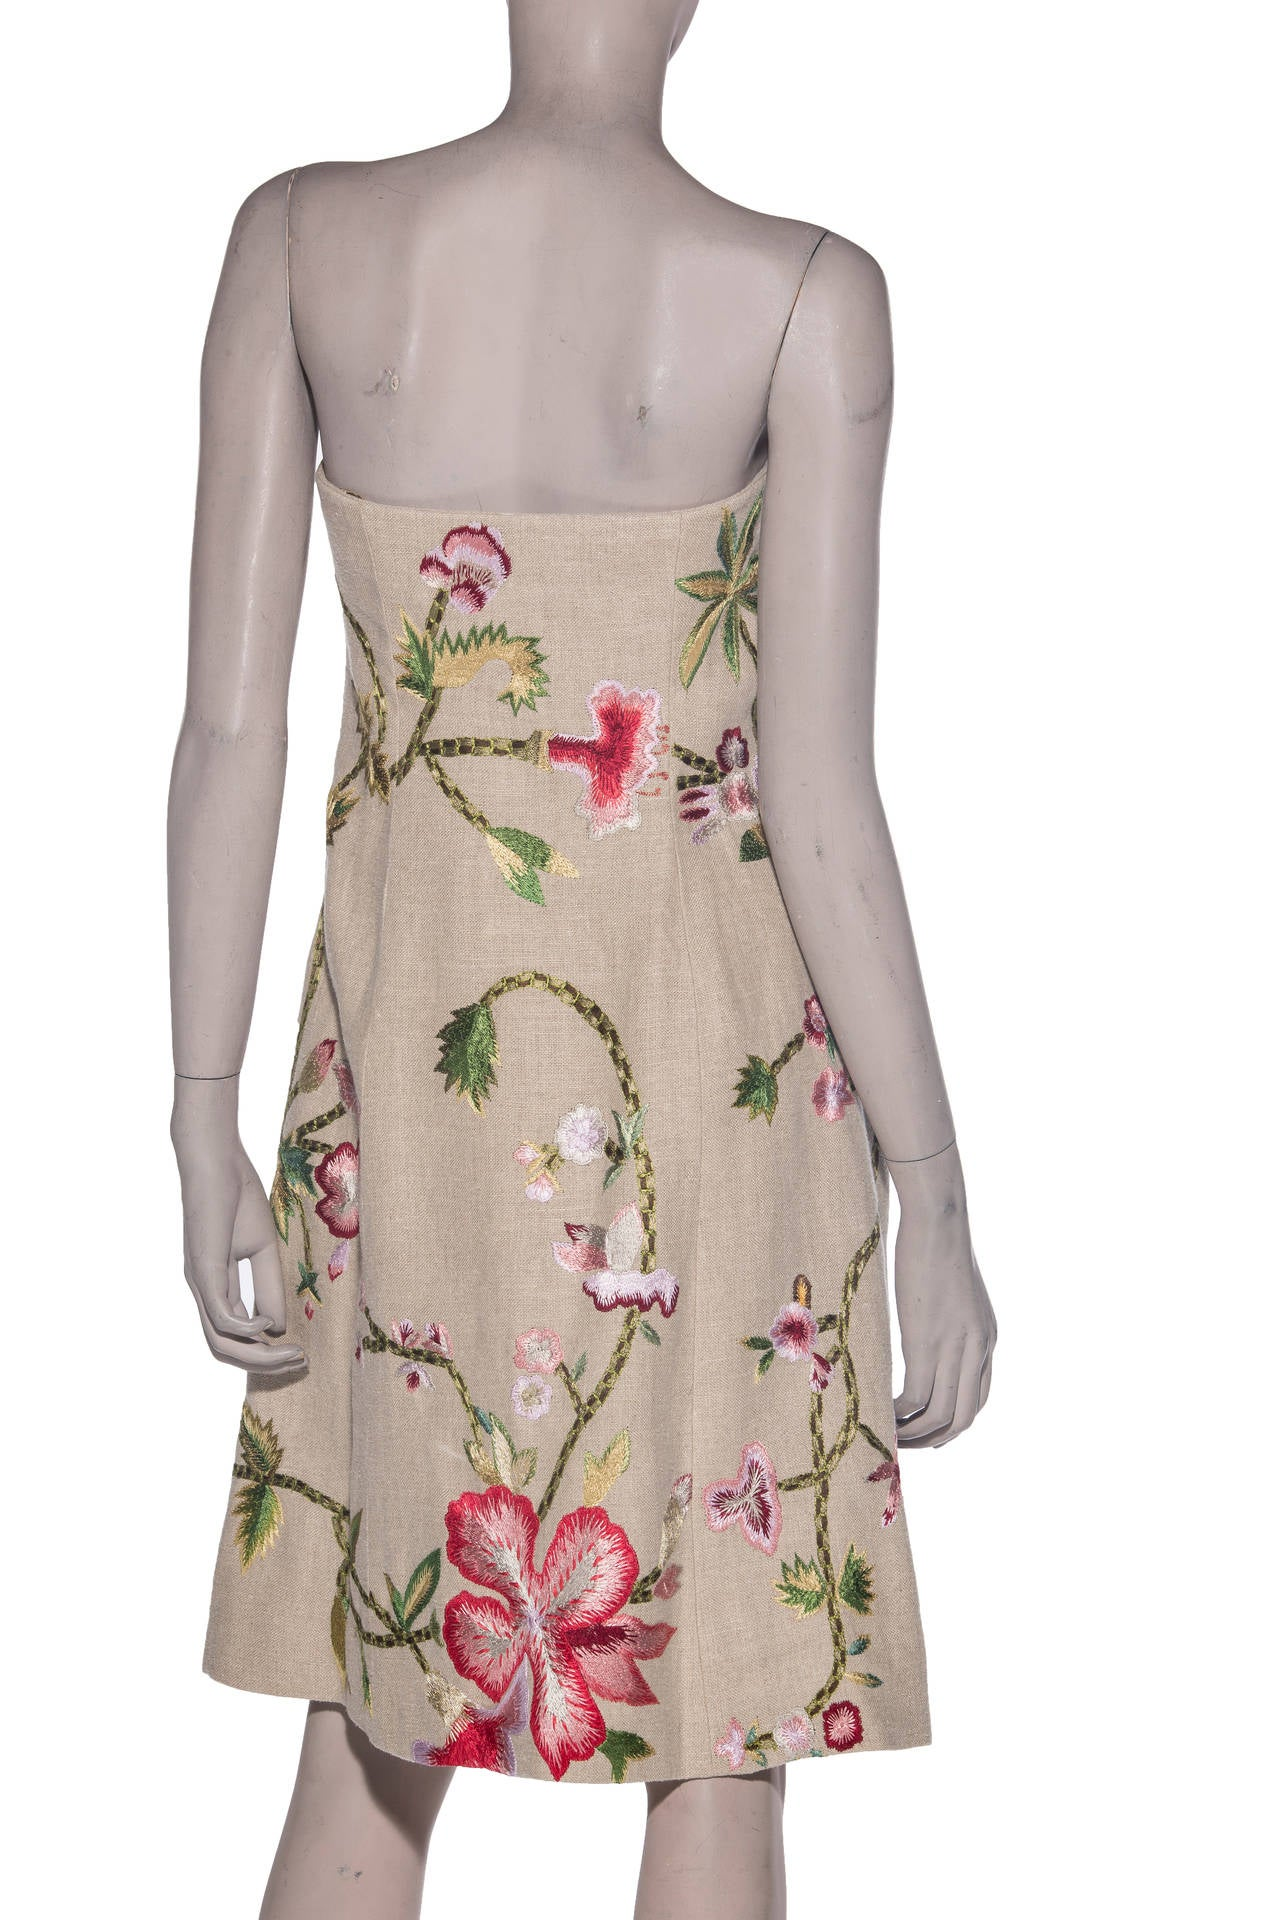 Women's Oscar De la Renta Circa 1990s For Sale